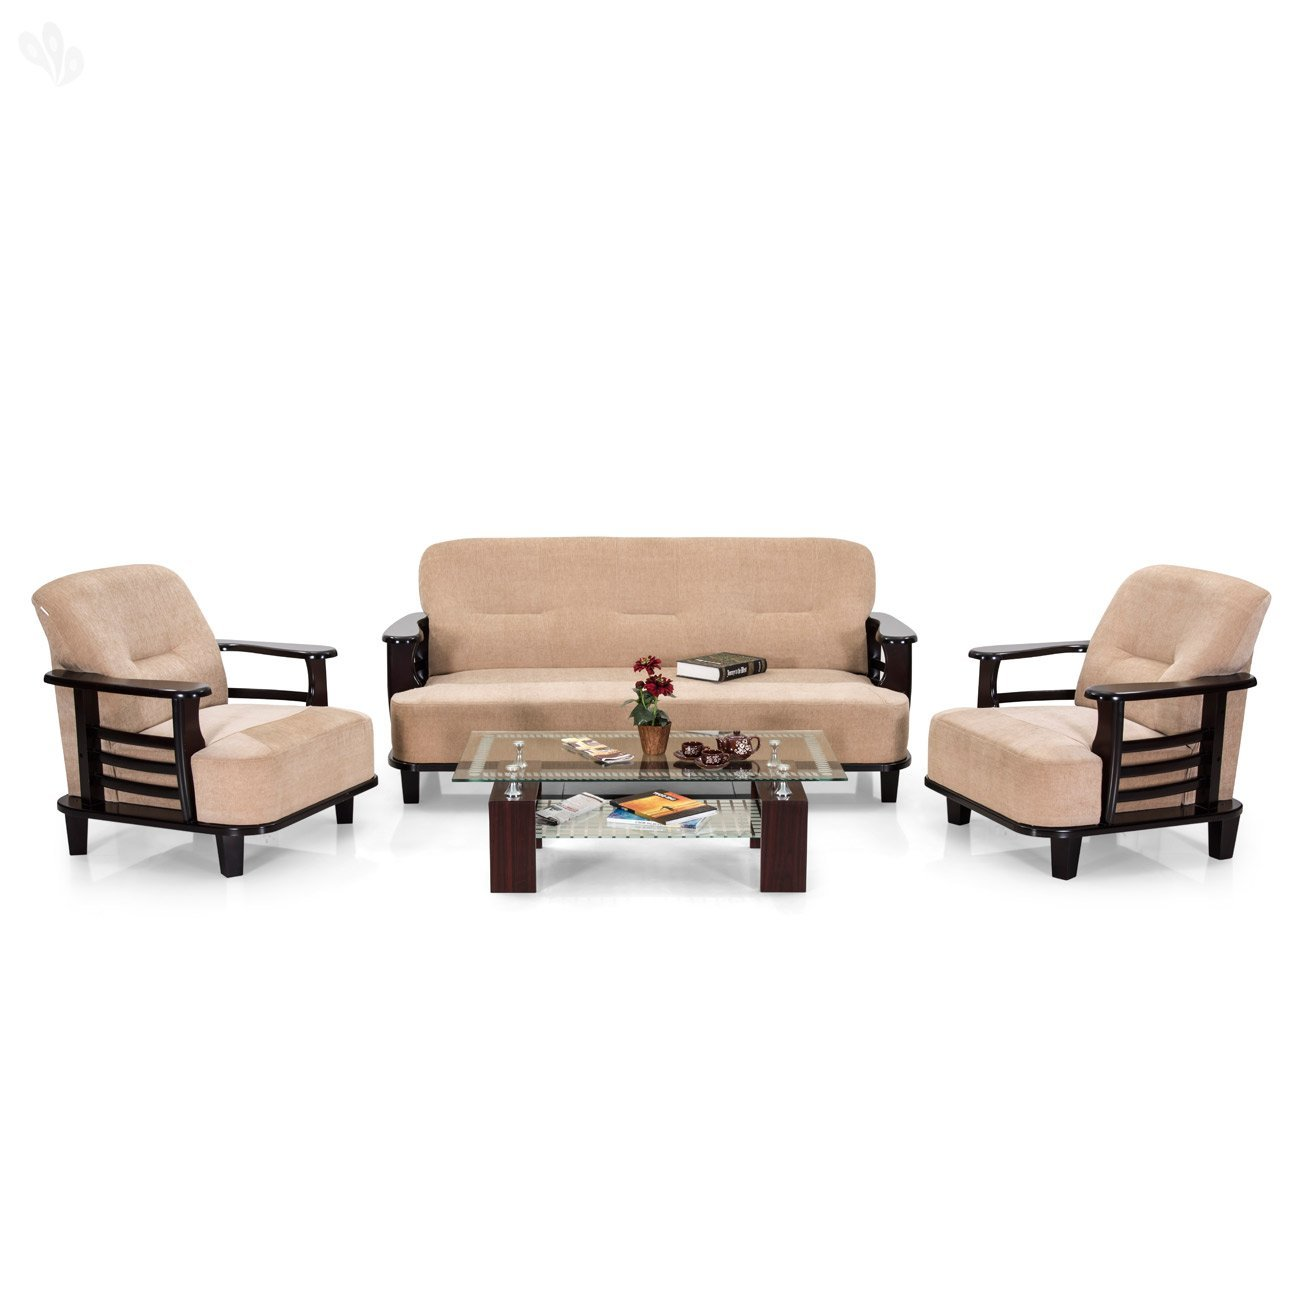 Exciting Chocolate Brown Living Room Sets